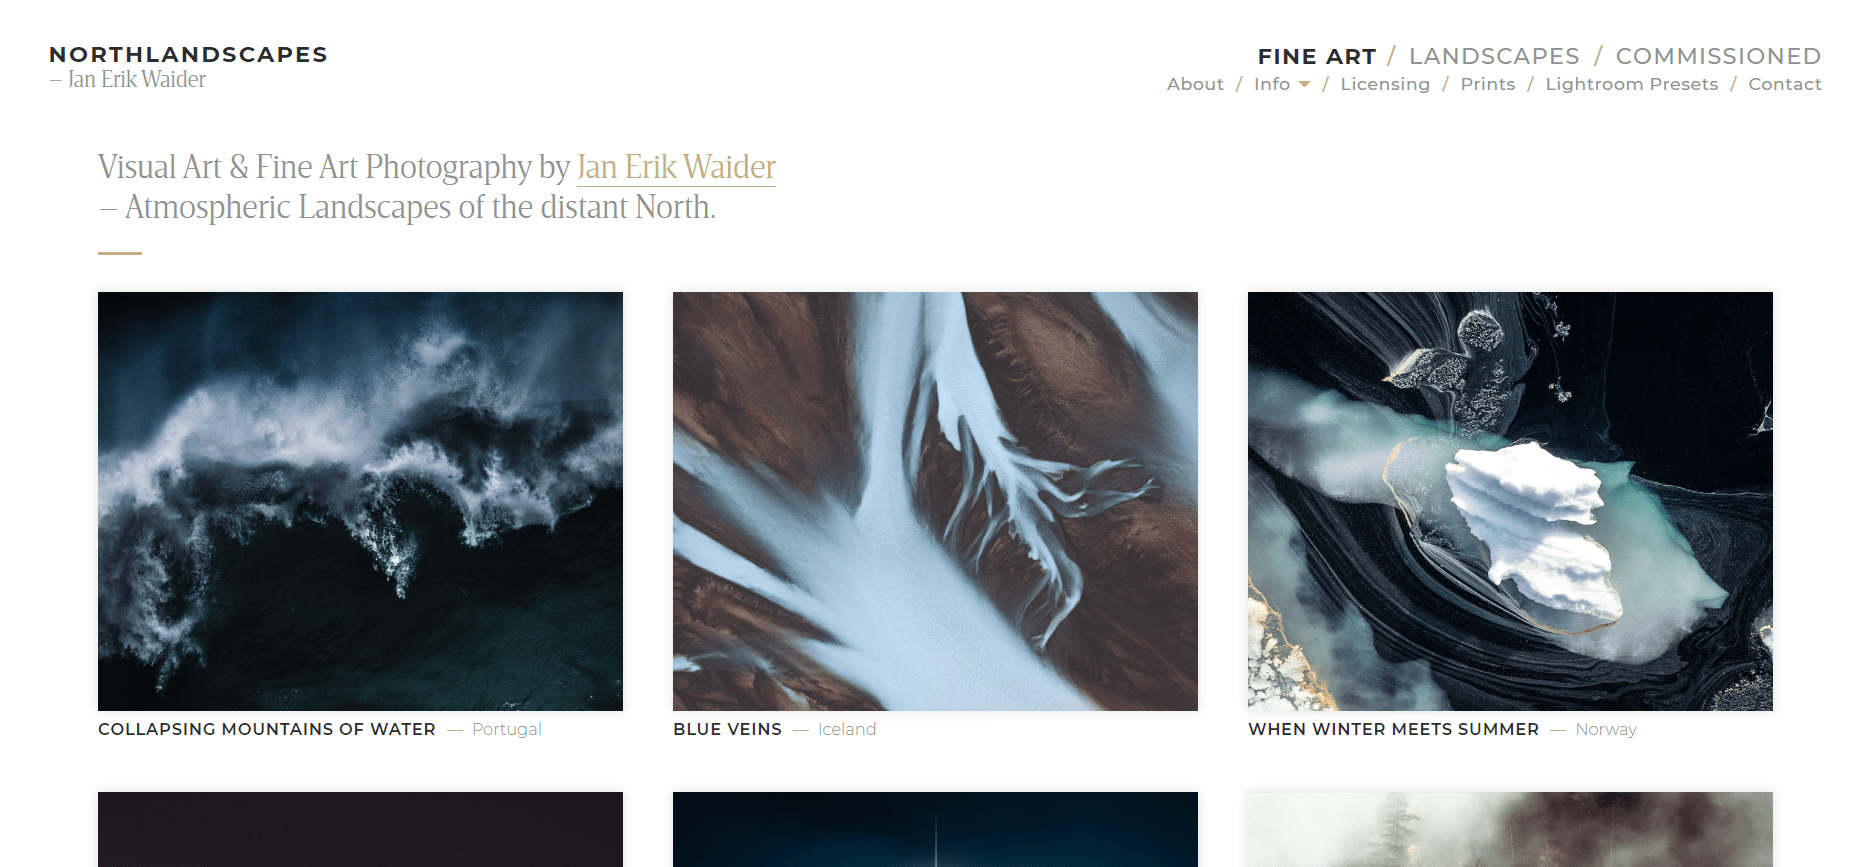 photographer website example for your inspiration